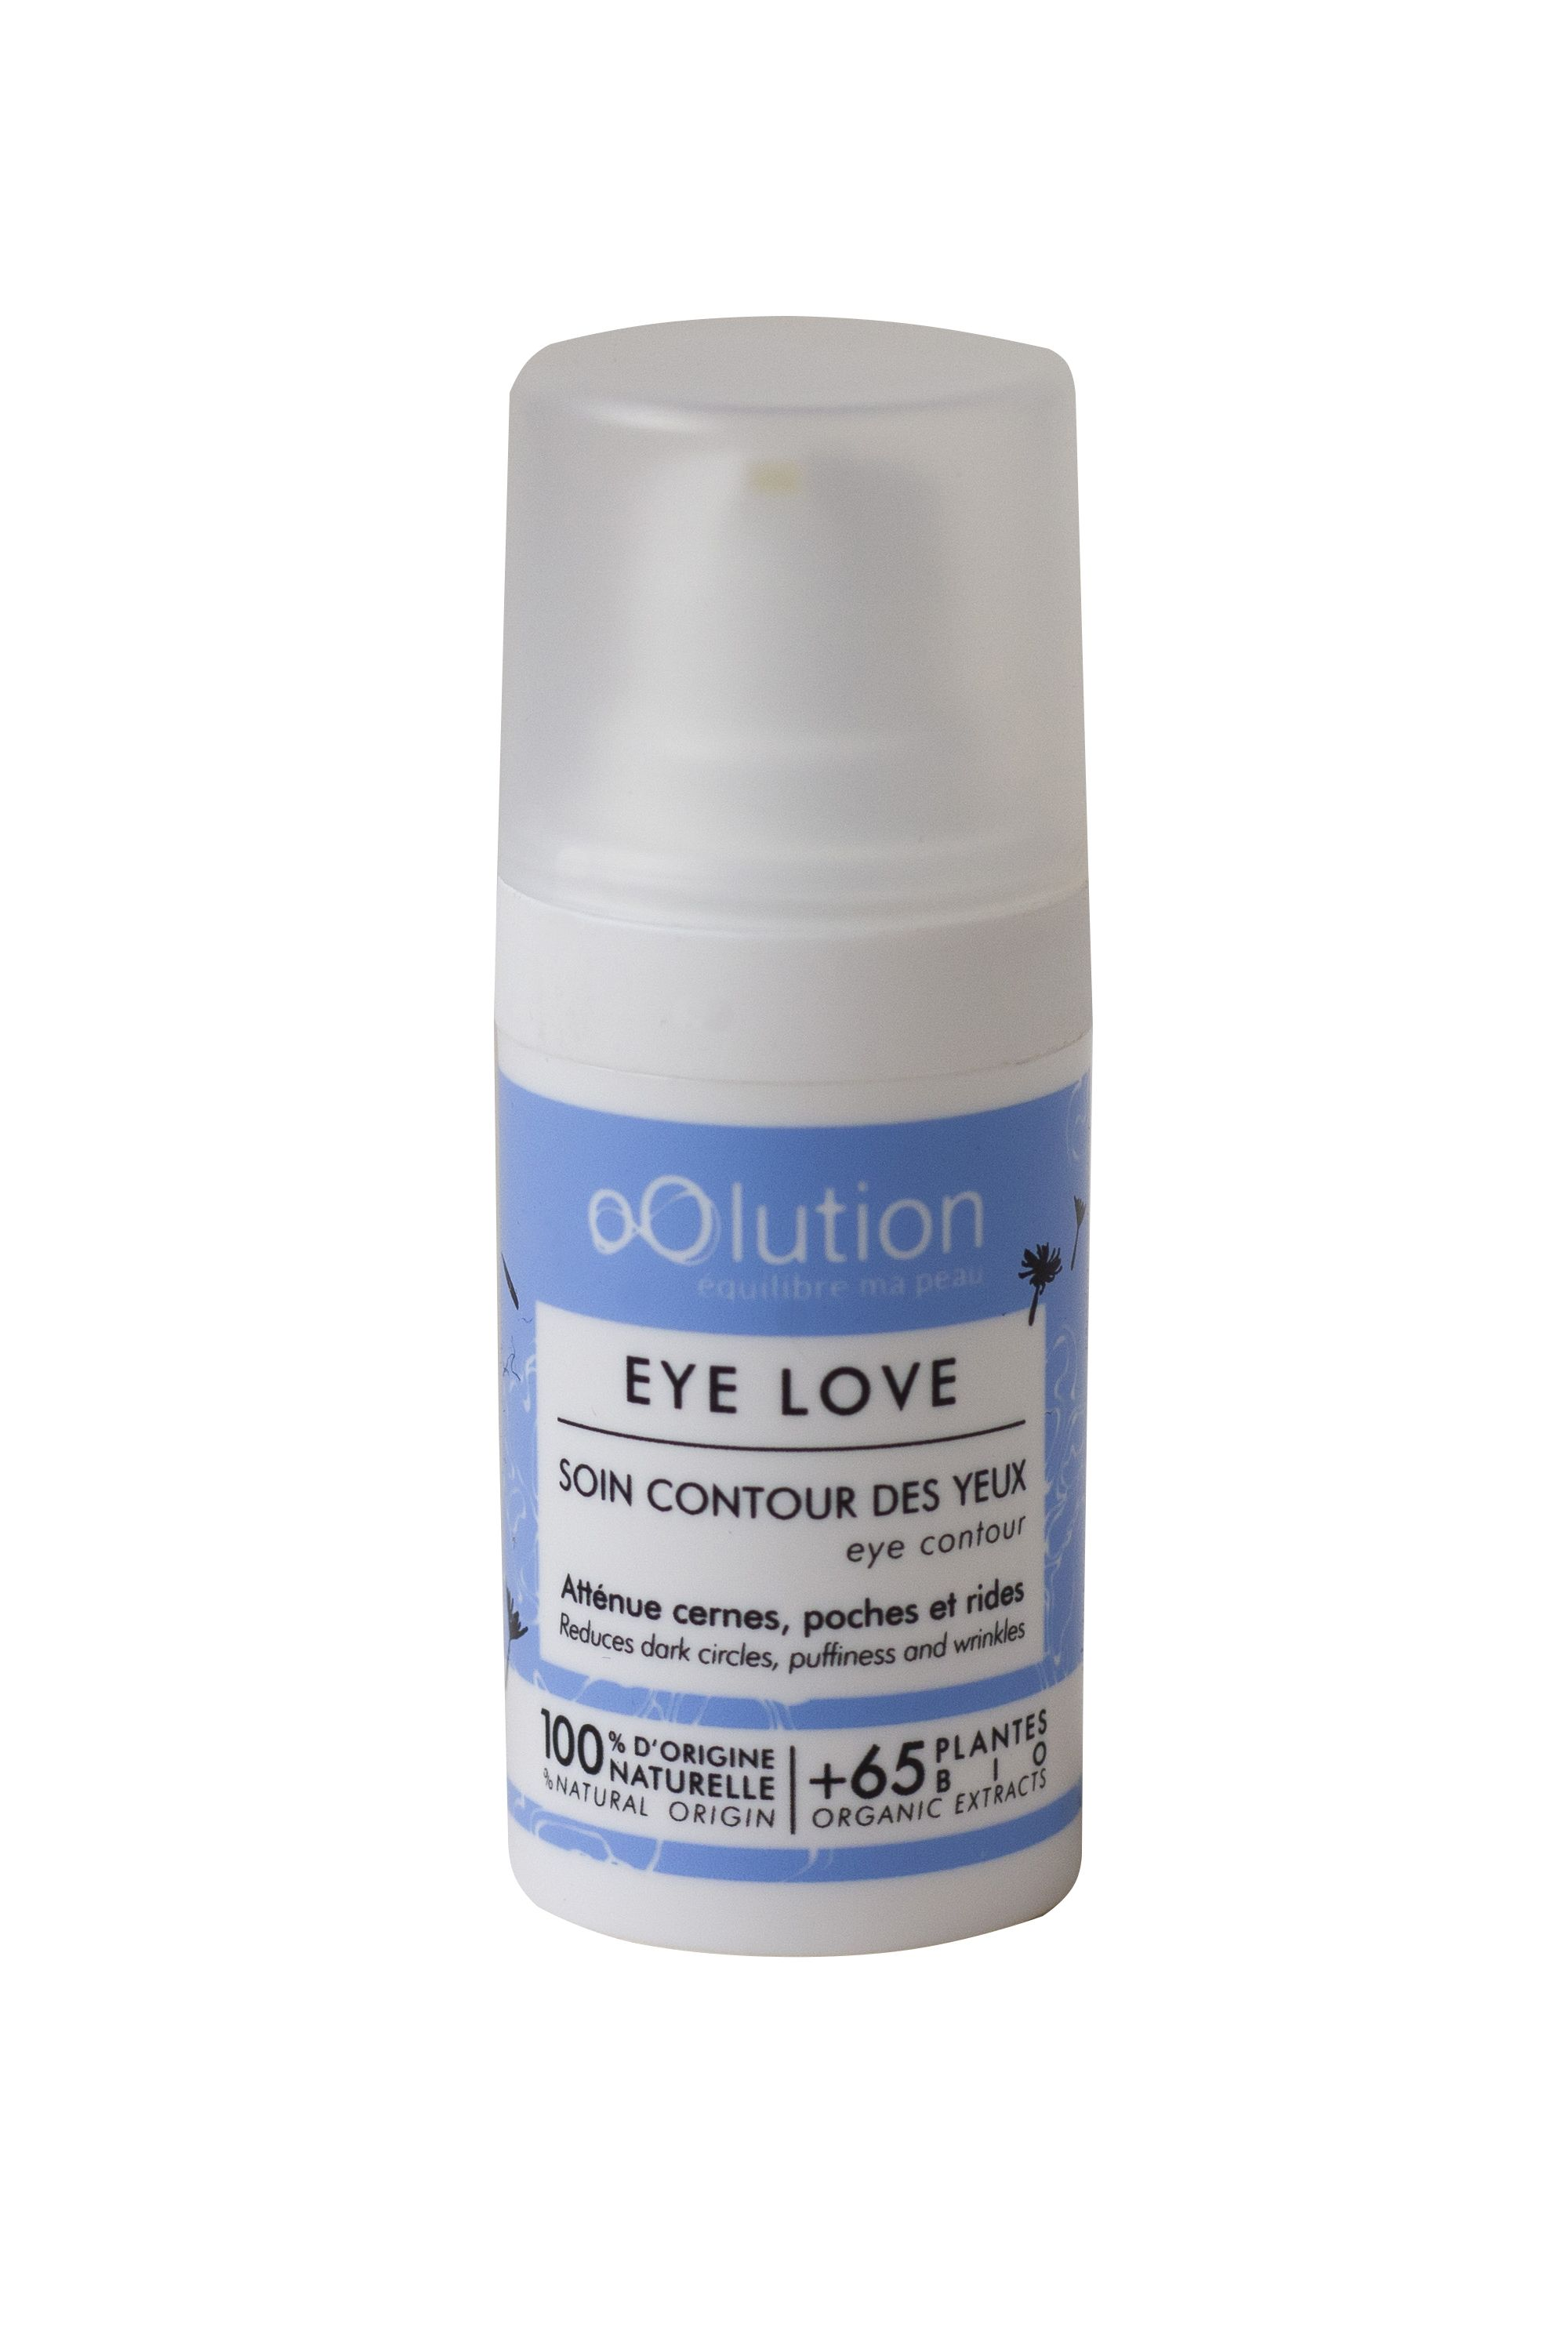 Blissim : Oolution - Contour des yeux multi-actions Eye Love - Contour des yeux multi-actions Eye Love